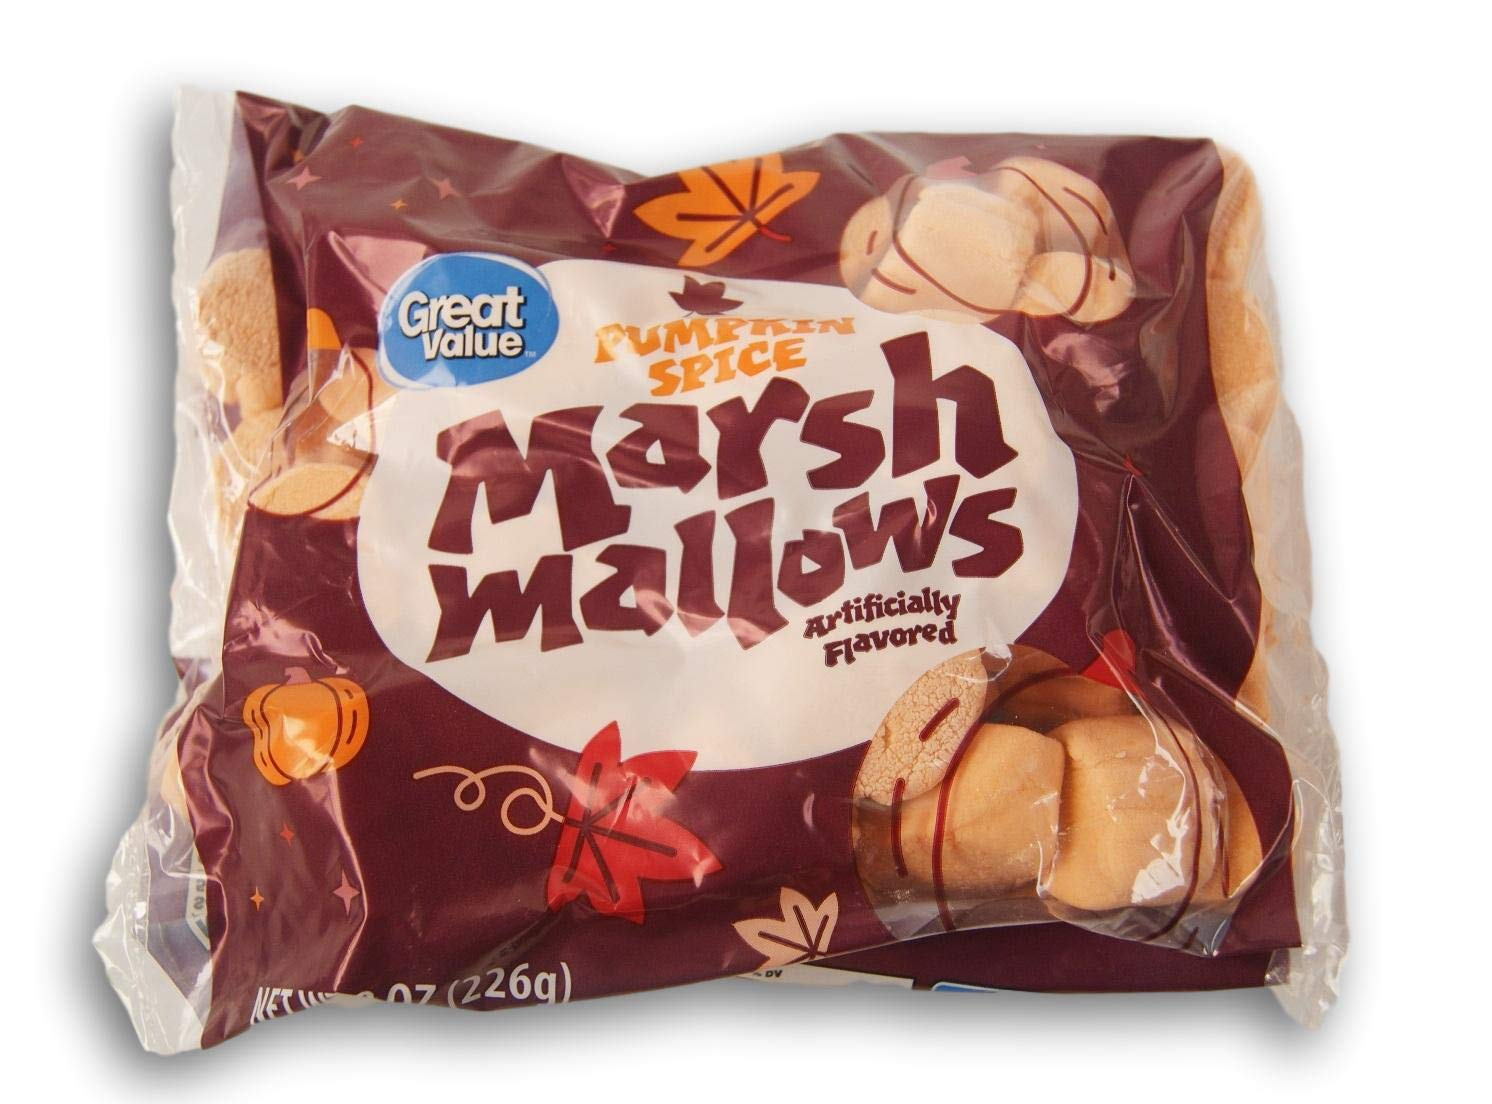 Halloween Max 57% OFF Pumpkin Spice 2021 spring and summer new Shaped 8 Flavored Oz - Marshmallows